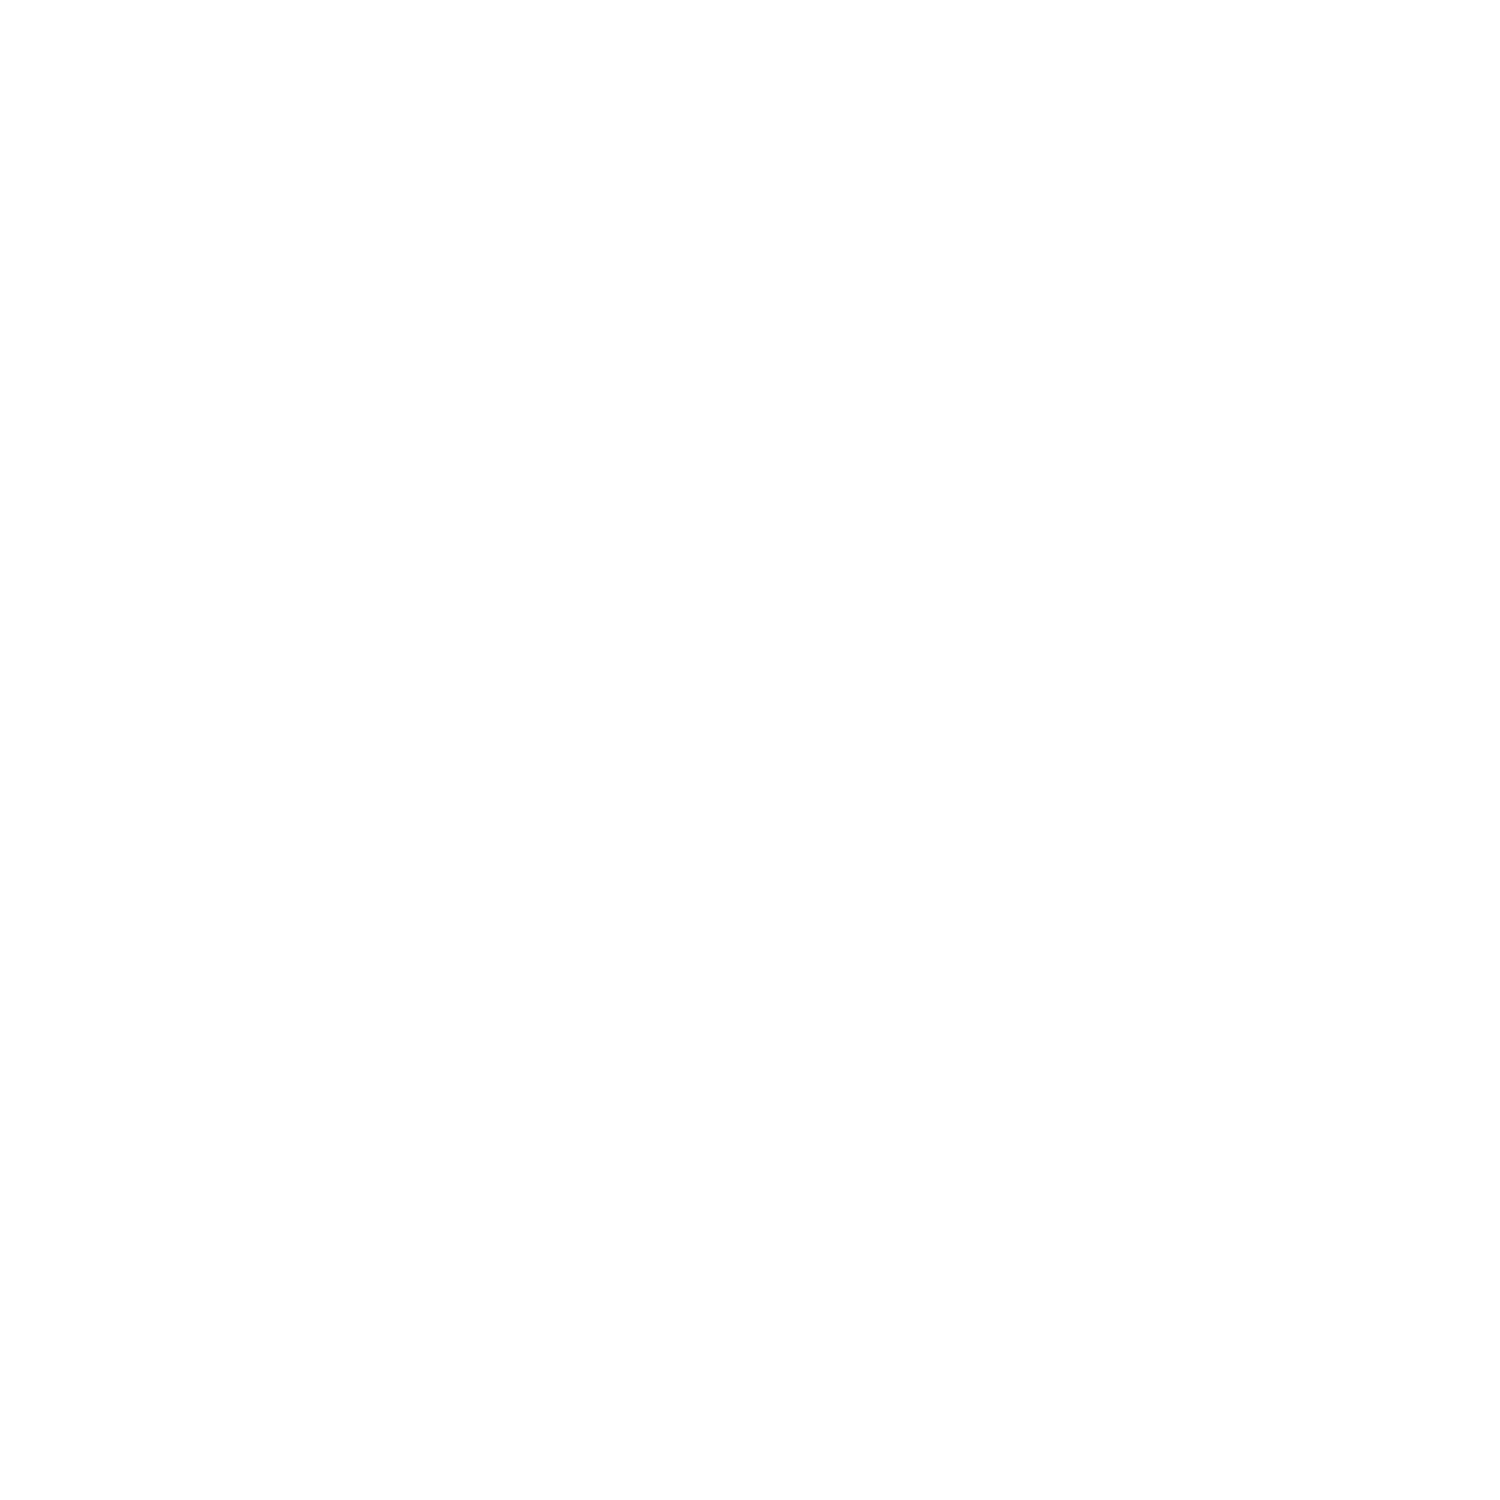 The Haddon Film Company